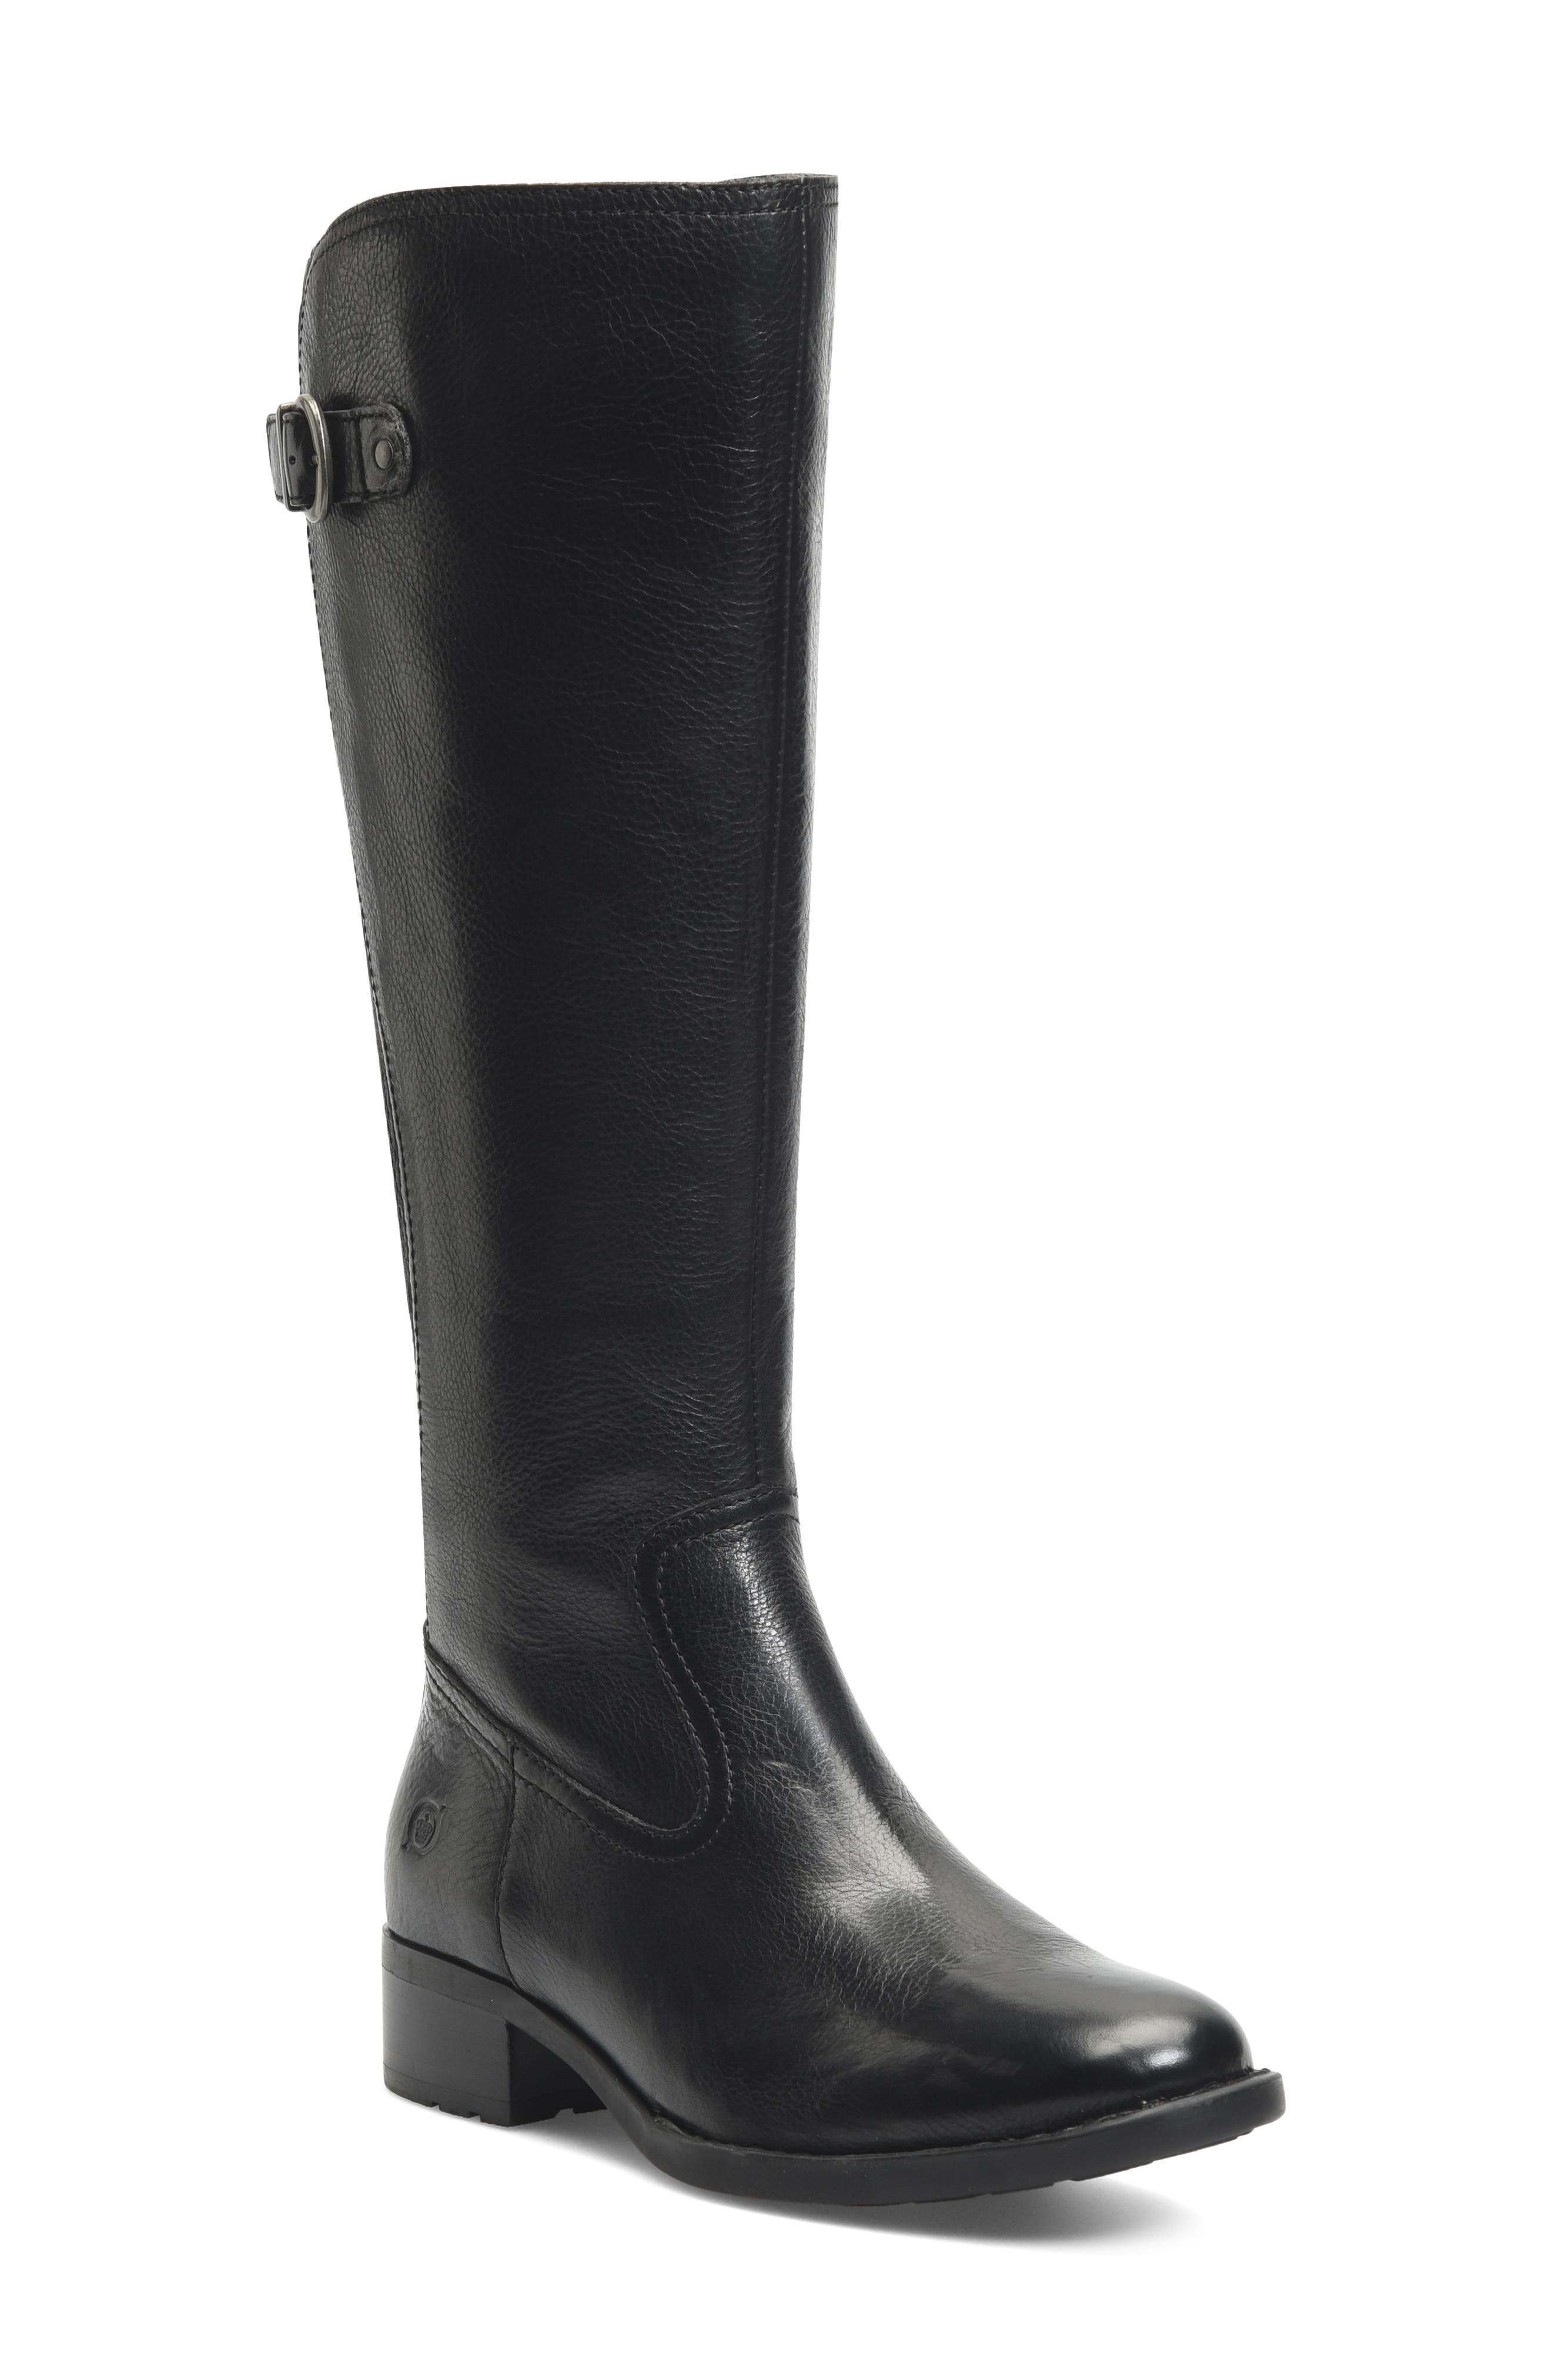 Full-shaft goring and an adjustable buckle strap create a streamlined fit in this equestrian-inspired knee-high boot set on a sturdy grip sole. Style Name:B?rn Carran Knee High Boot (Women). Style Number: 6071995. Available in stores.